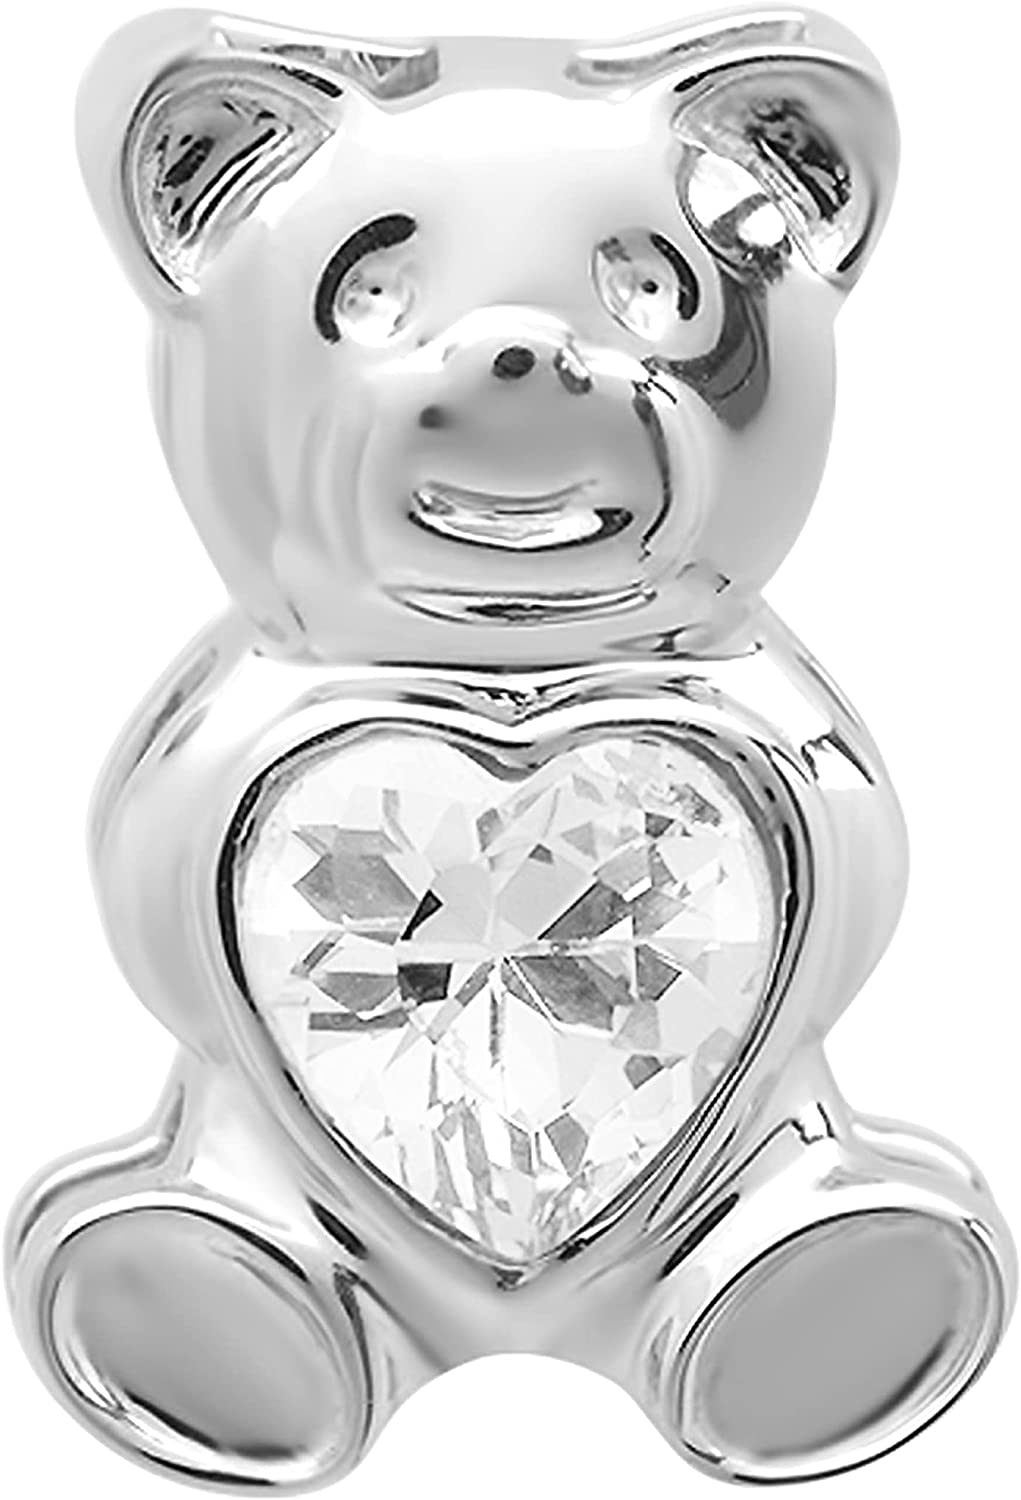 Dazzlingrock Collection Cute Teddy Bear Zirconia Very popular! price Cubic Love with